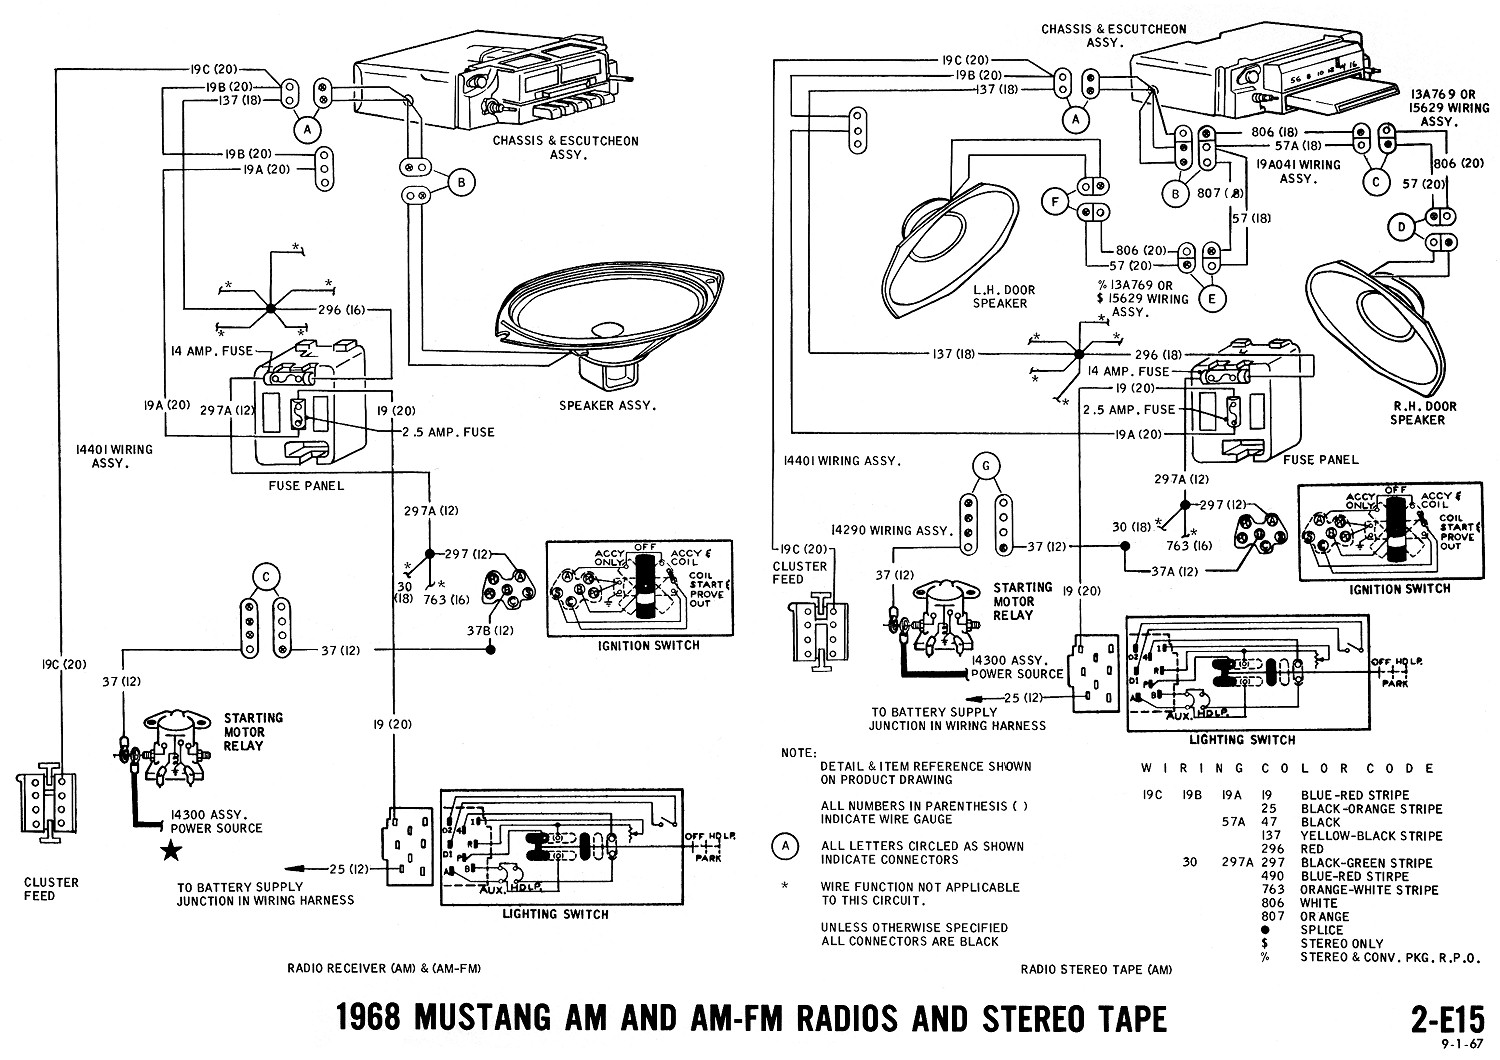 E15 1968 mustang wiring diagrams evolving software 2007 mustang gt stereo wiring diagram at mifinder.co